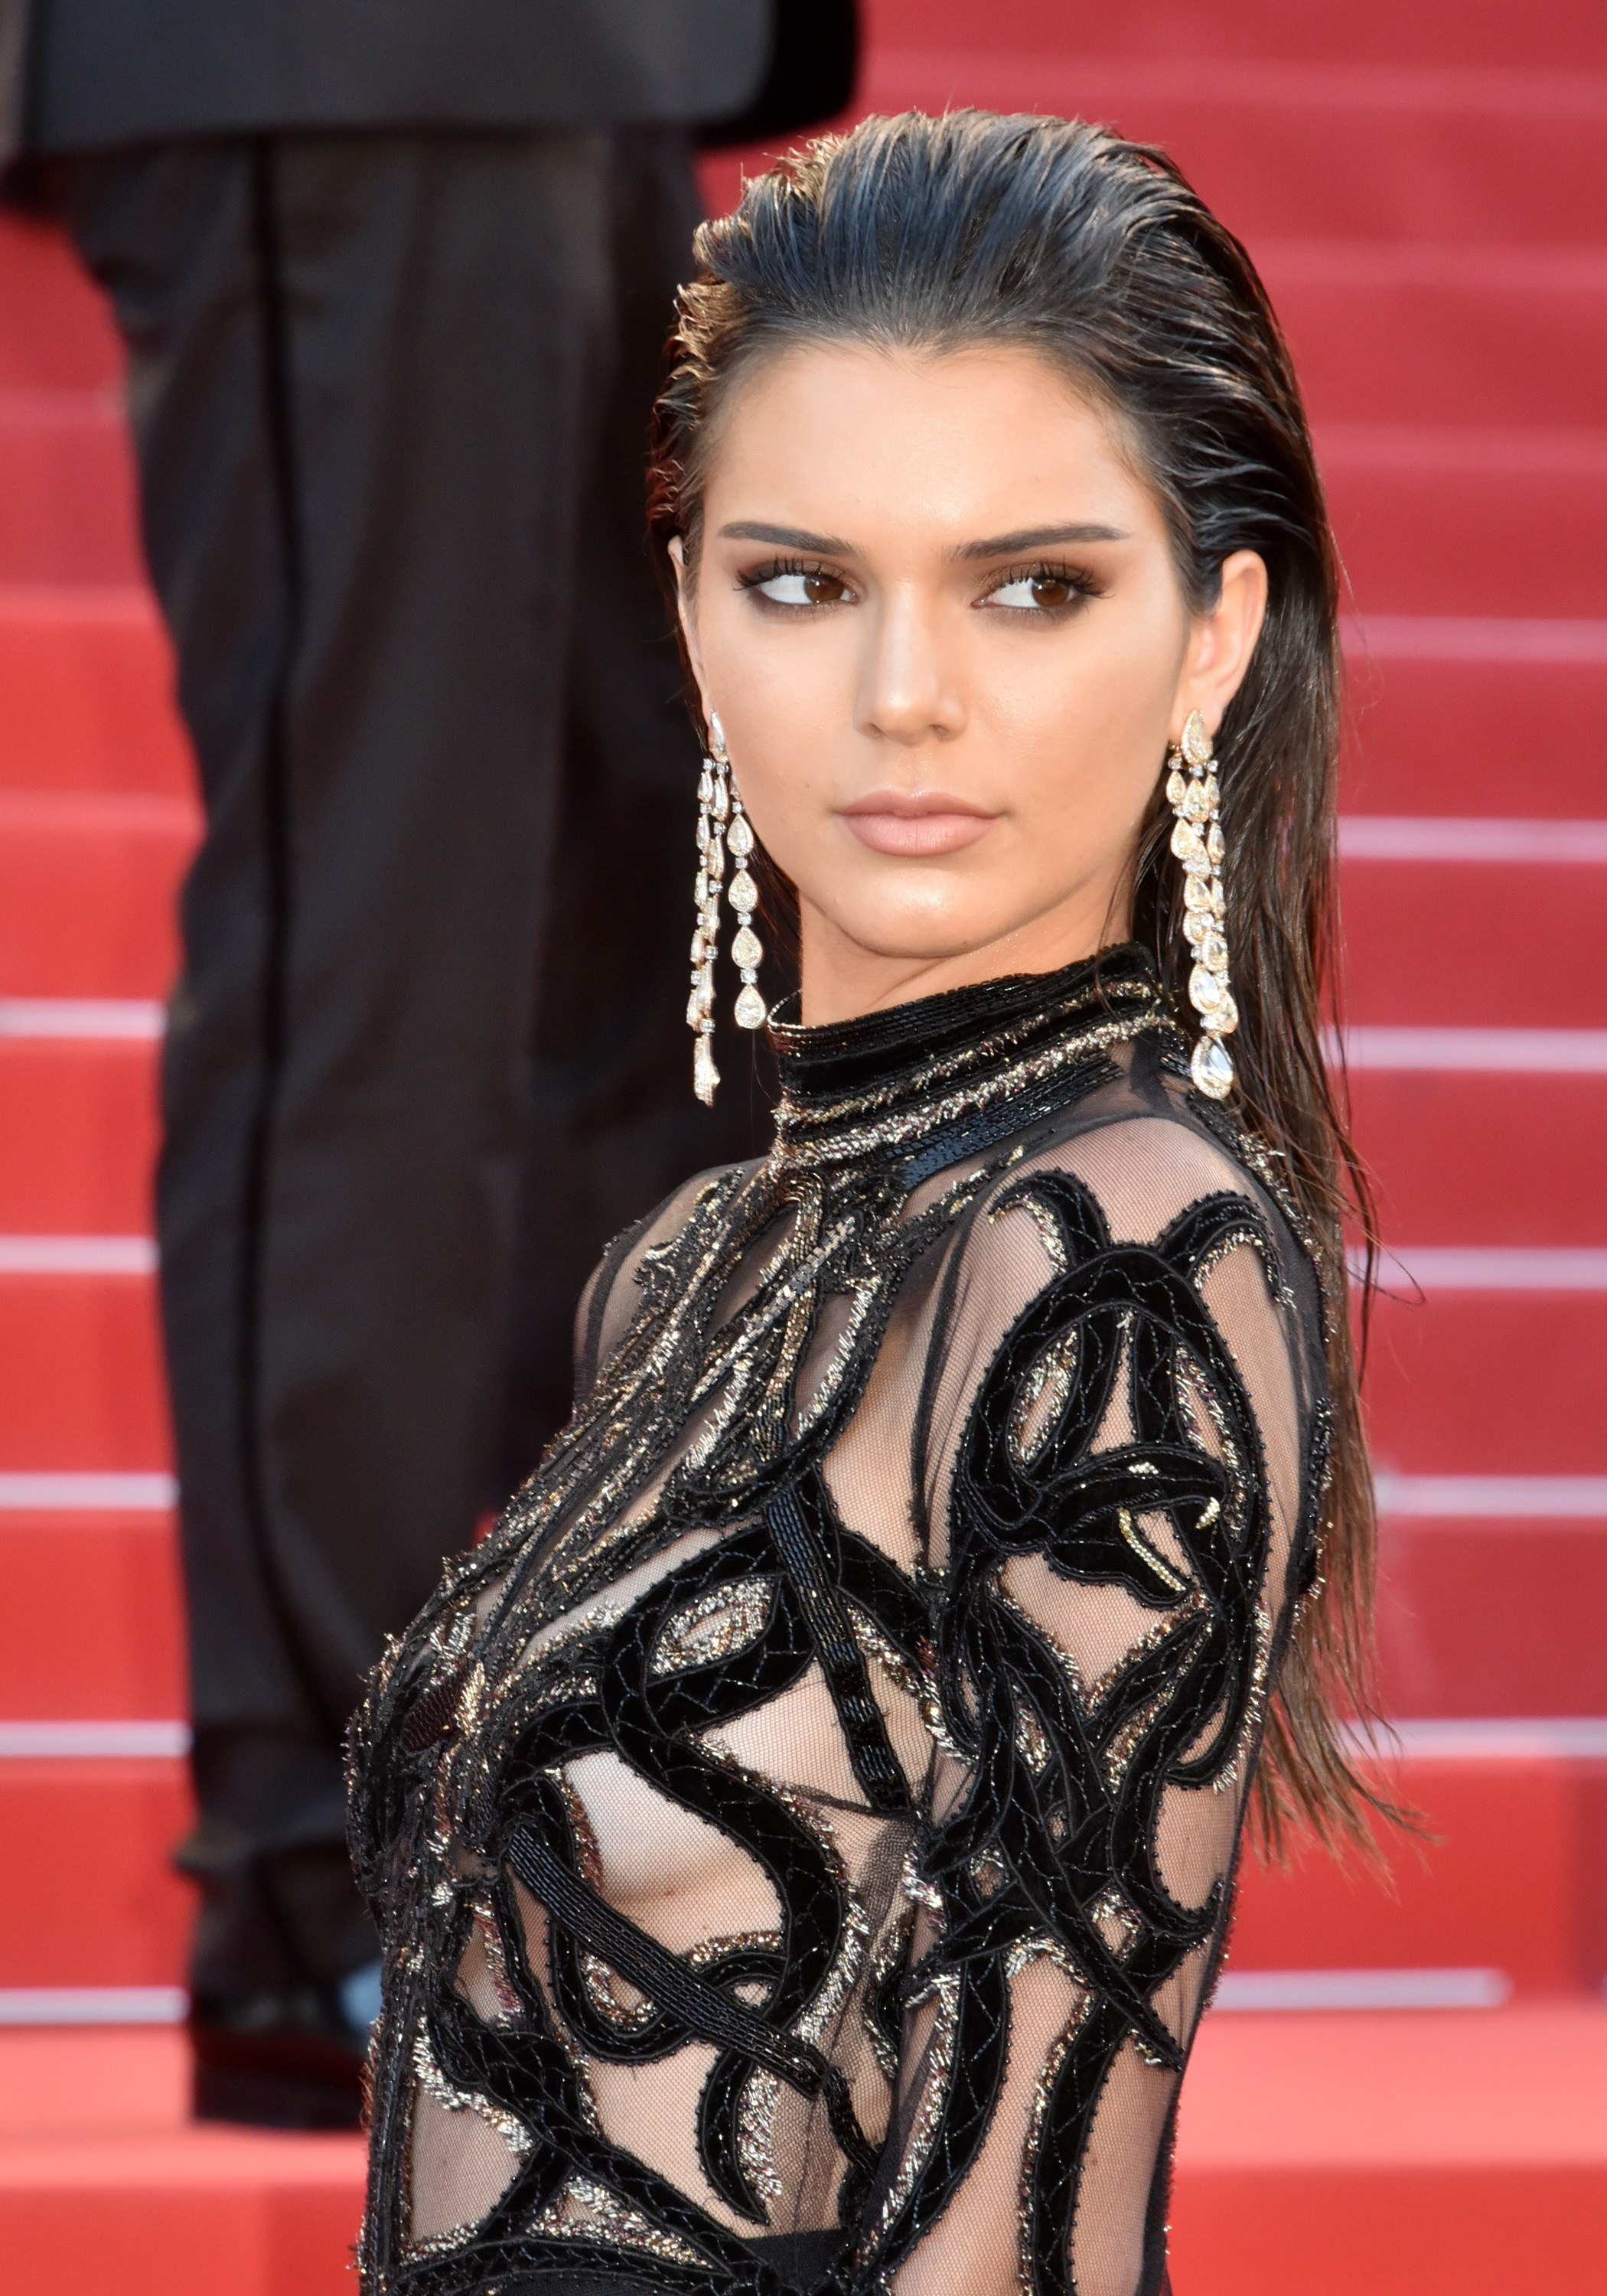 Kendall Jenner slicked back long hairstyles